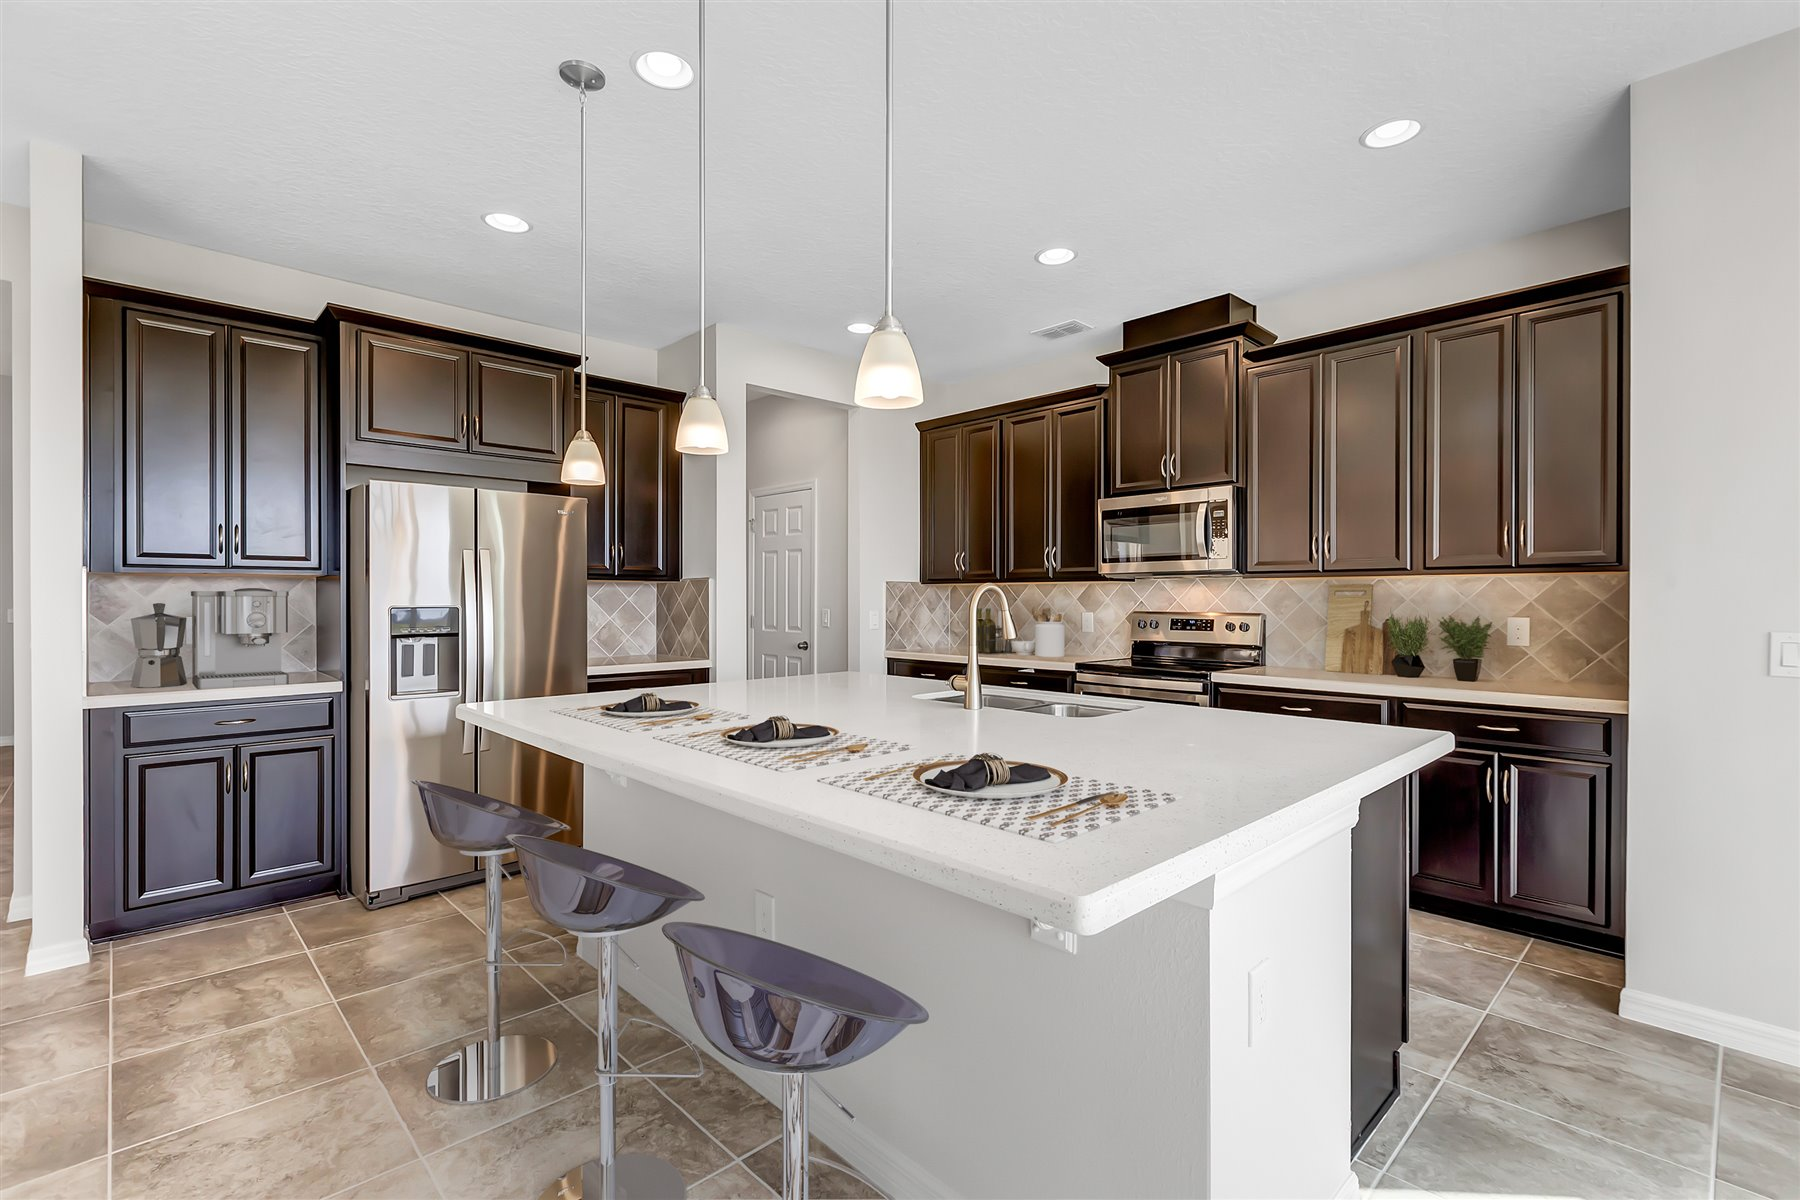 Graham Plan Kitchen at Tohoqua in Kissimmee Florida by Mattamy Homes